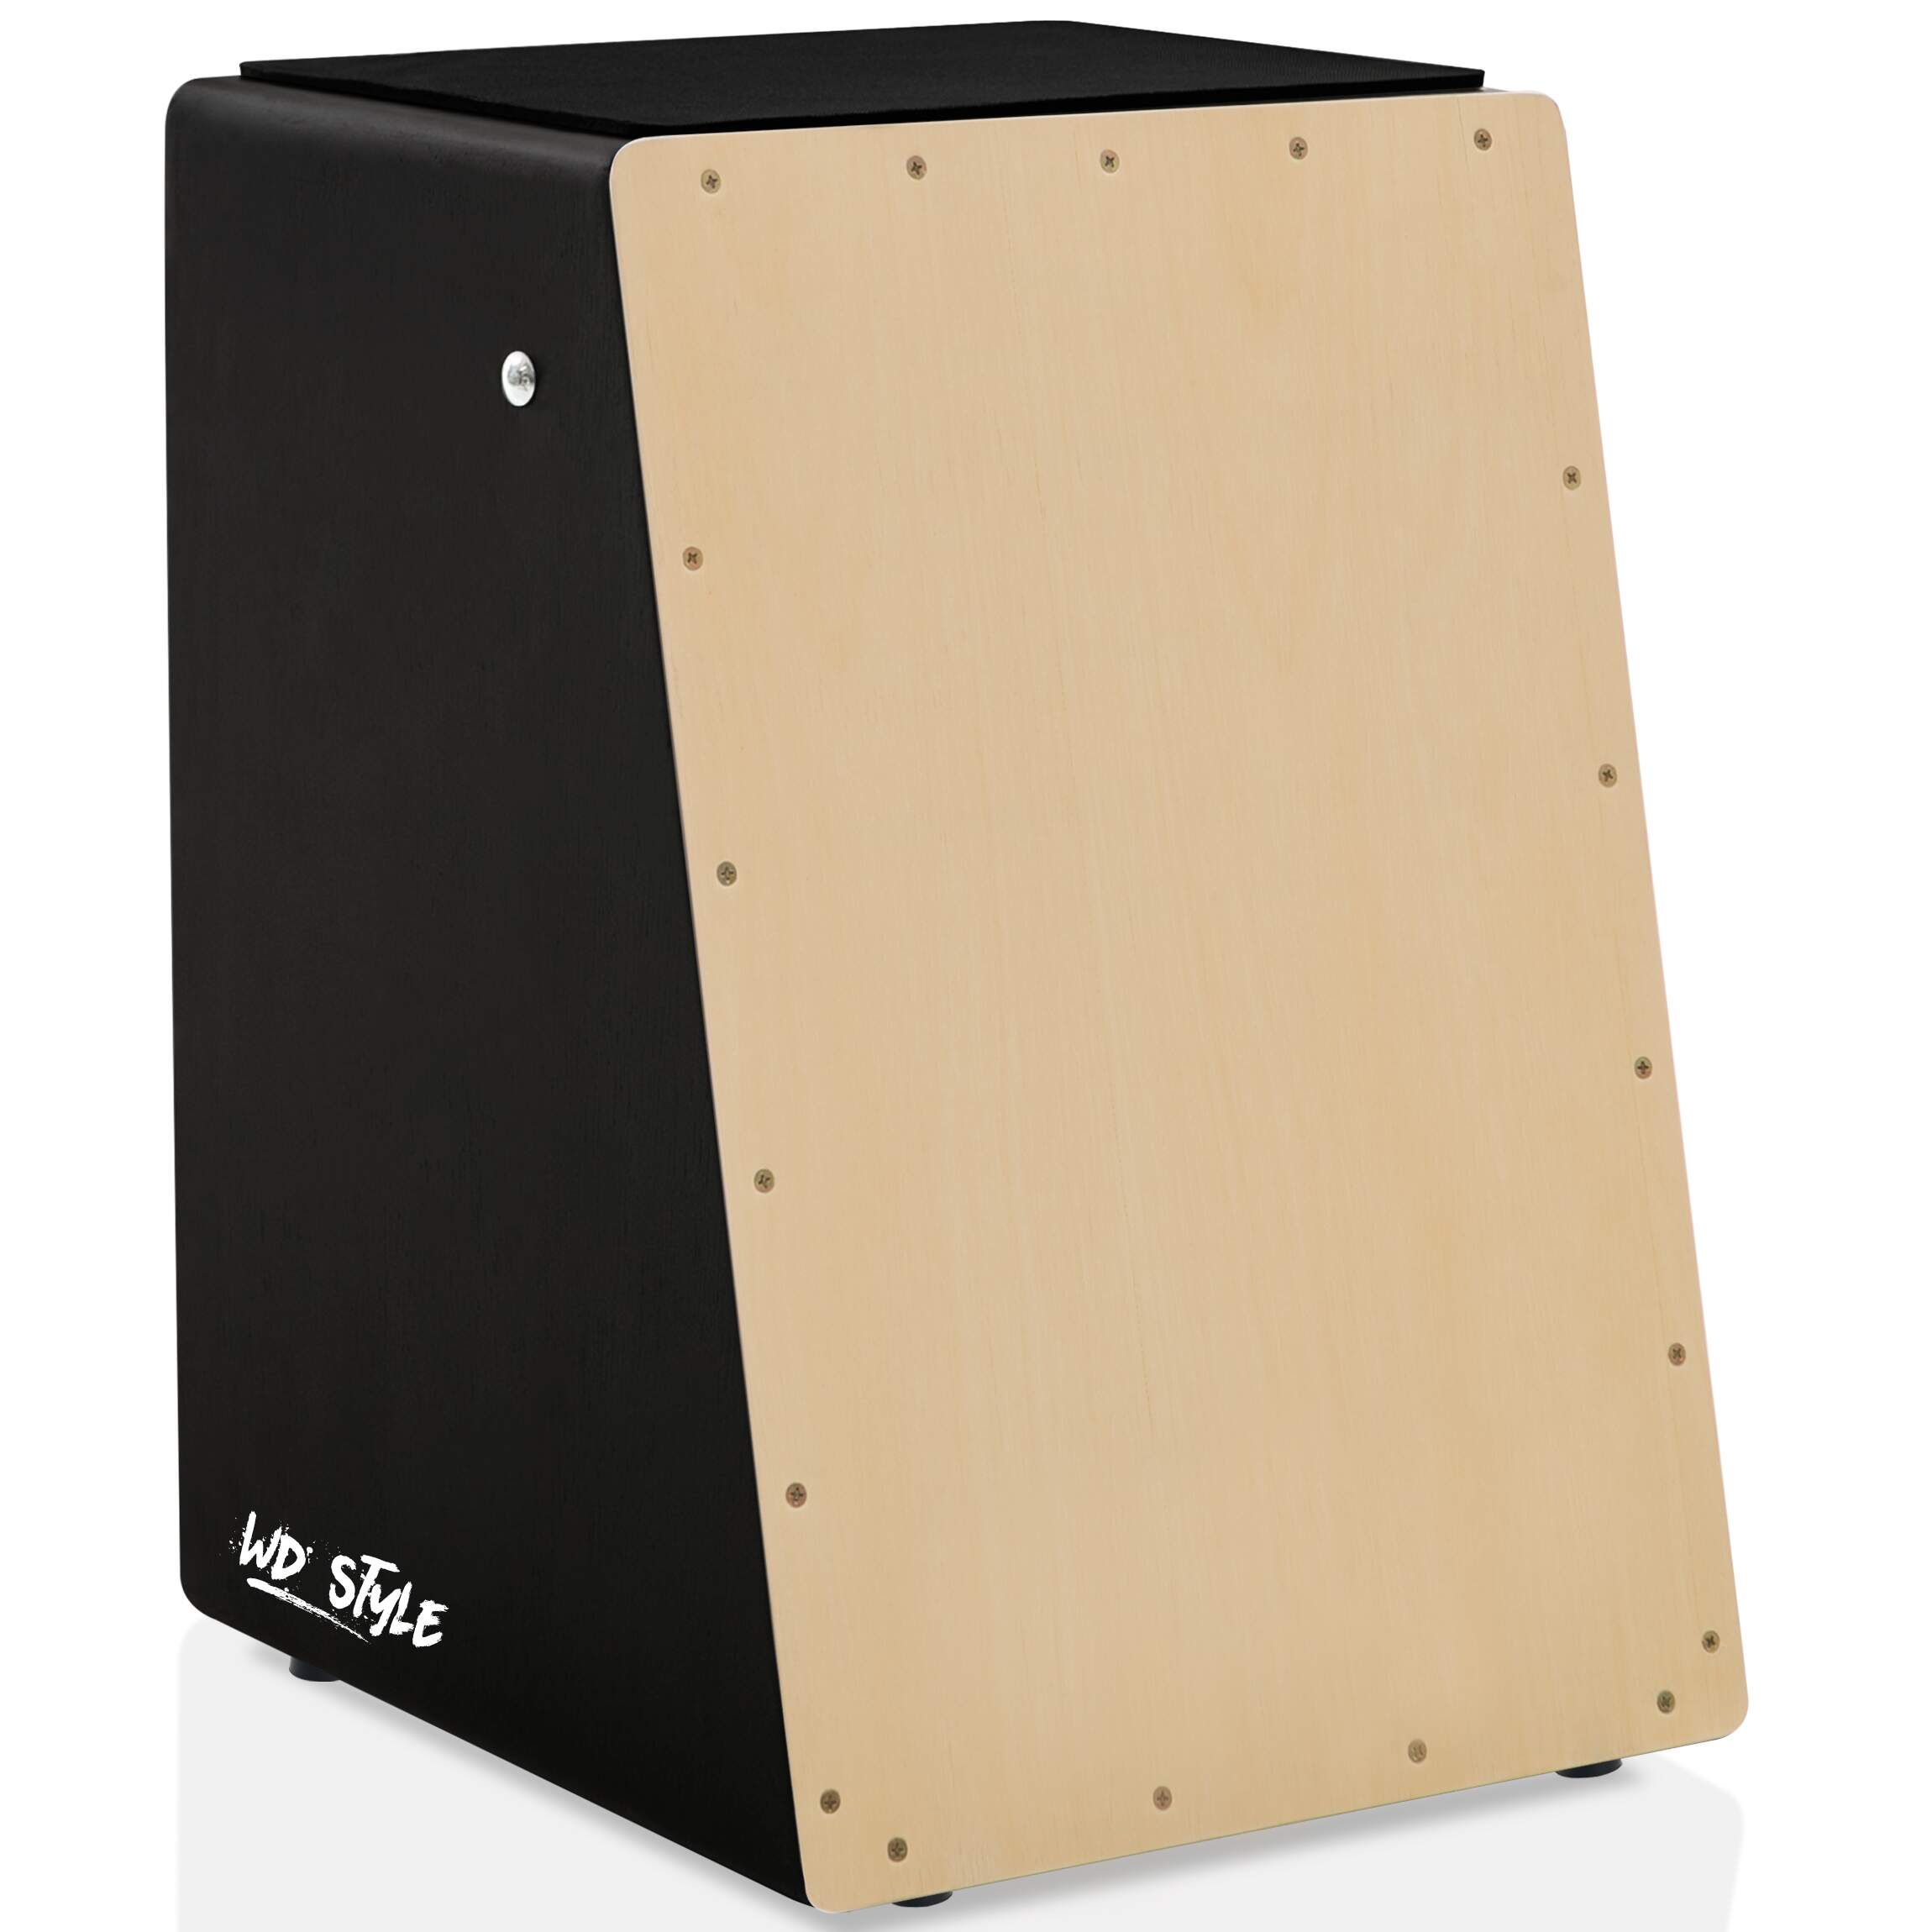 Cajón WD Style Personalizado Inclinado Black - Tampa Natural | LONDON